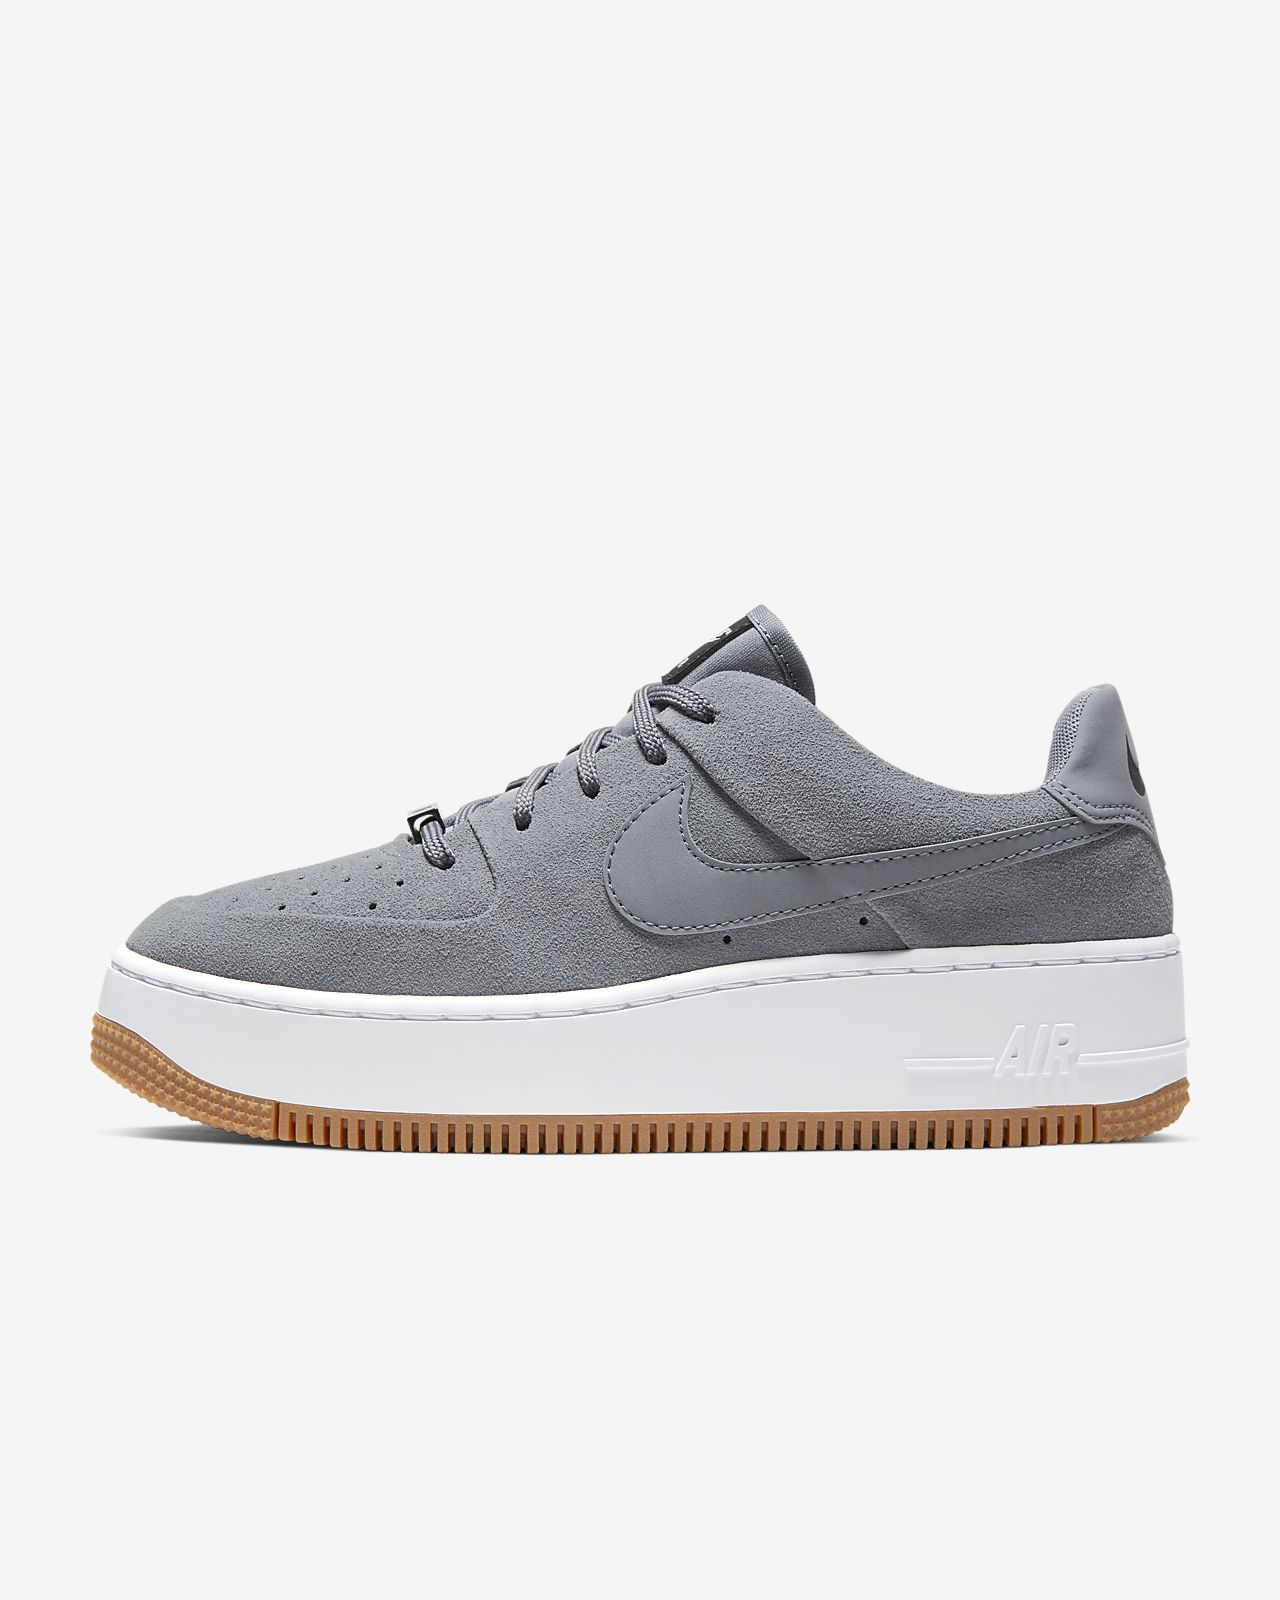 100% authentic huge inventory online retailer Nike Air Force 1 Sage Low Women's Shoe